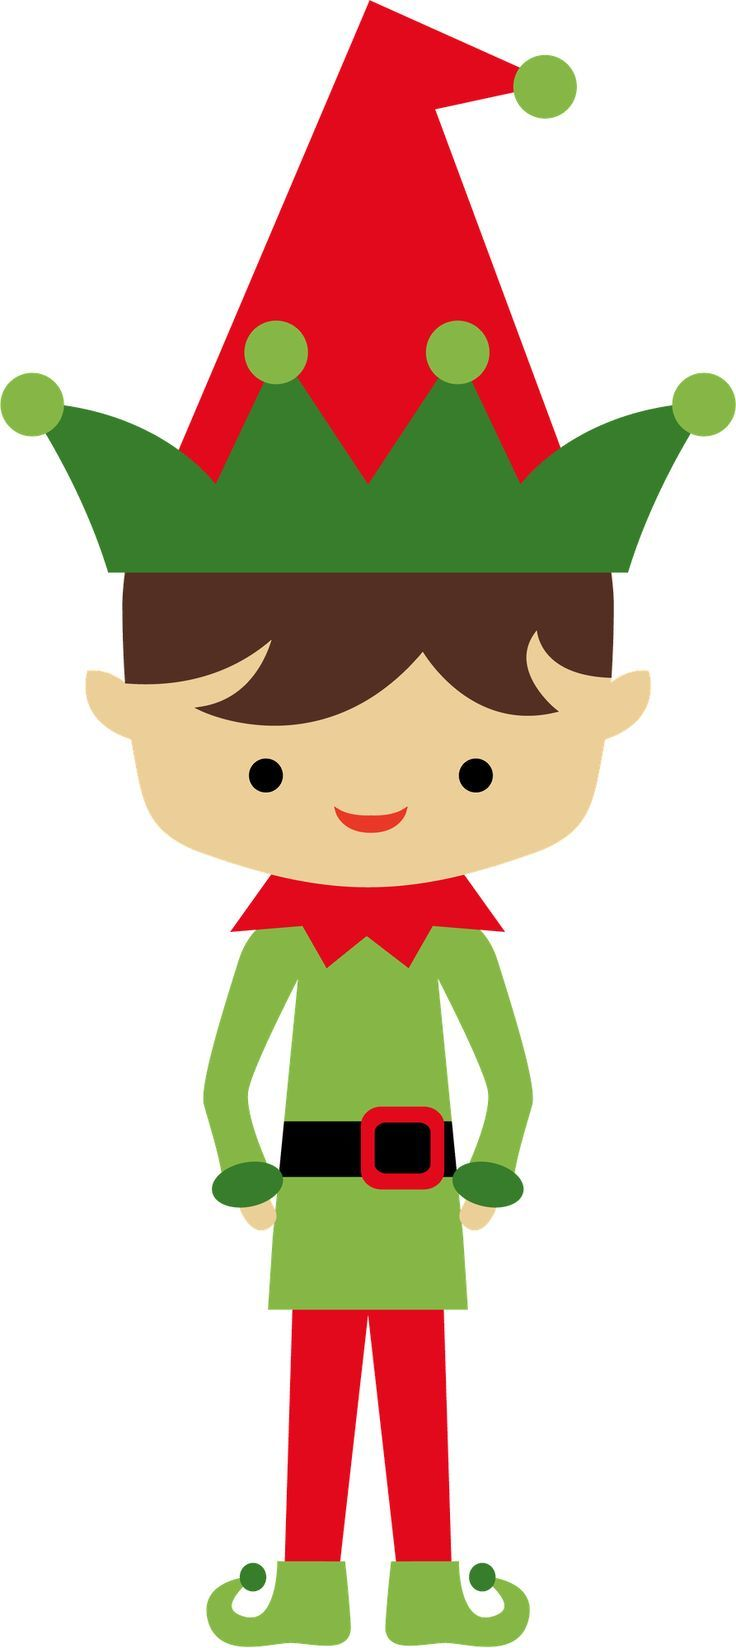 minus say hello ilustra christmas elf clip ward christmas party rh pinterest com free printable holiday clipart free printable religious christmas clipart